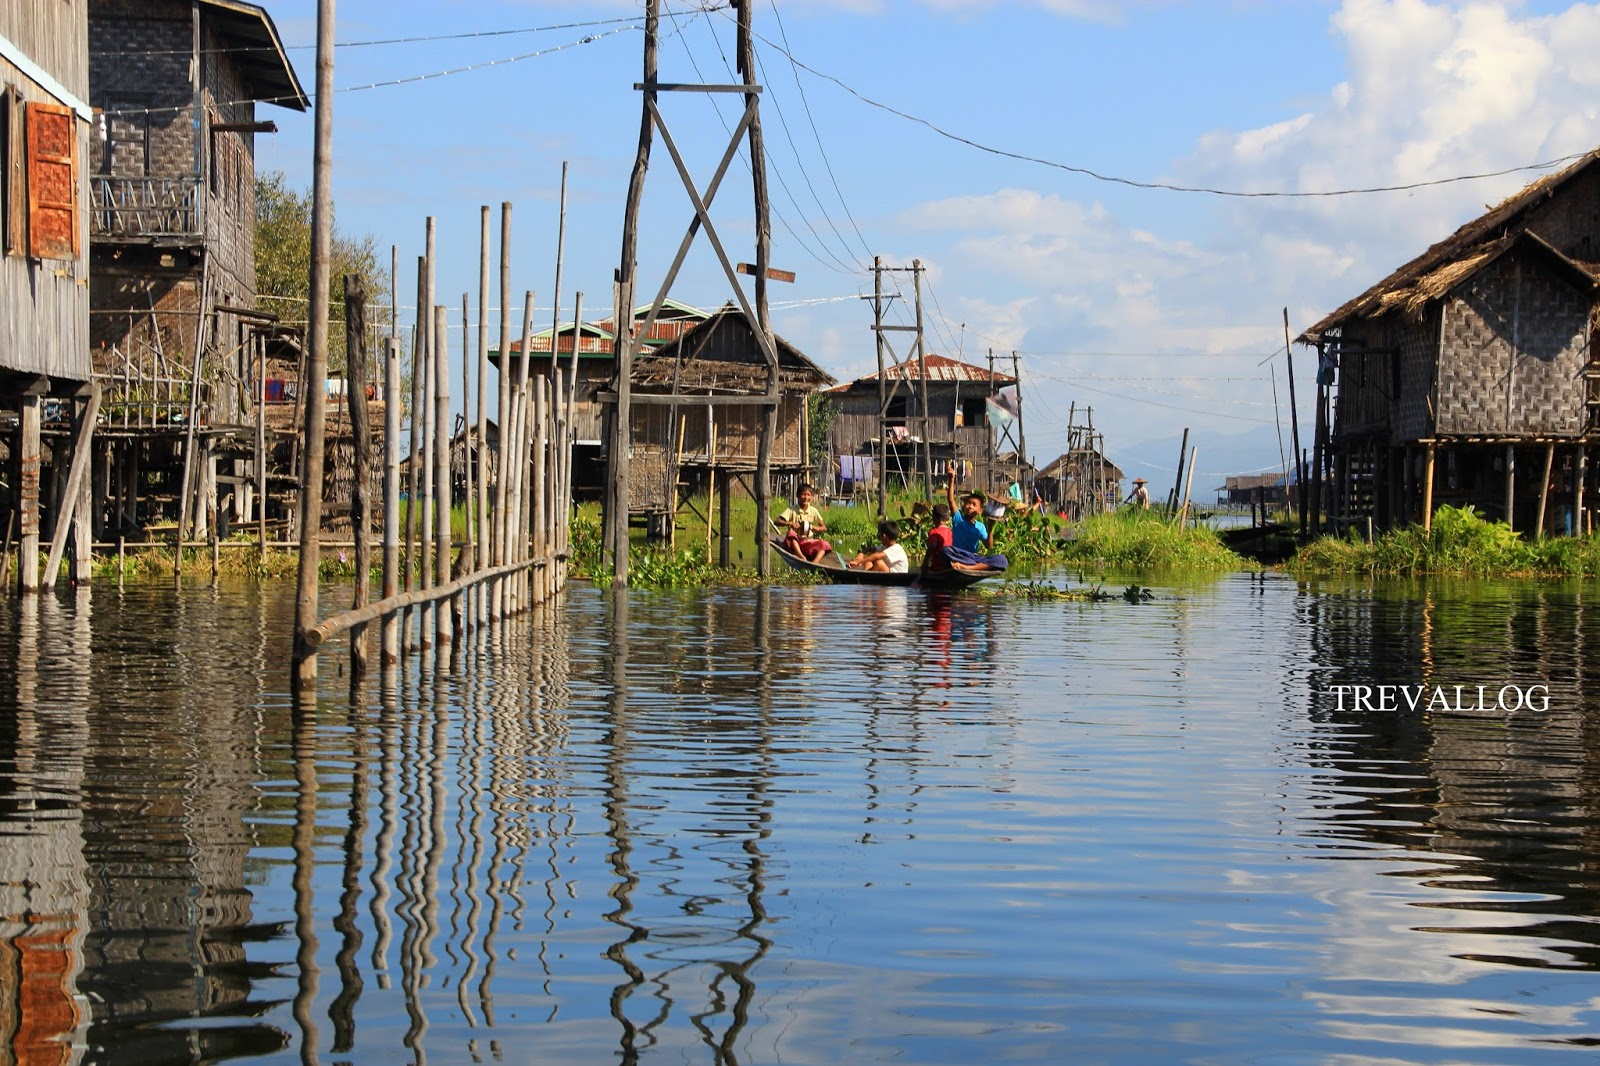 Playground in Inle Lake, Myanmar